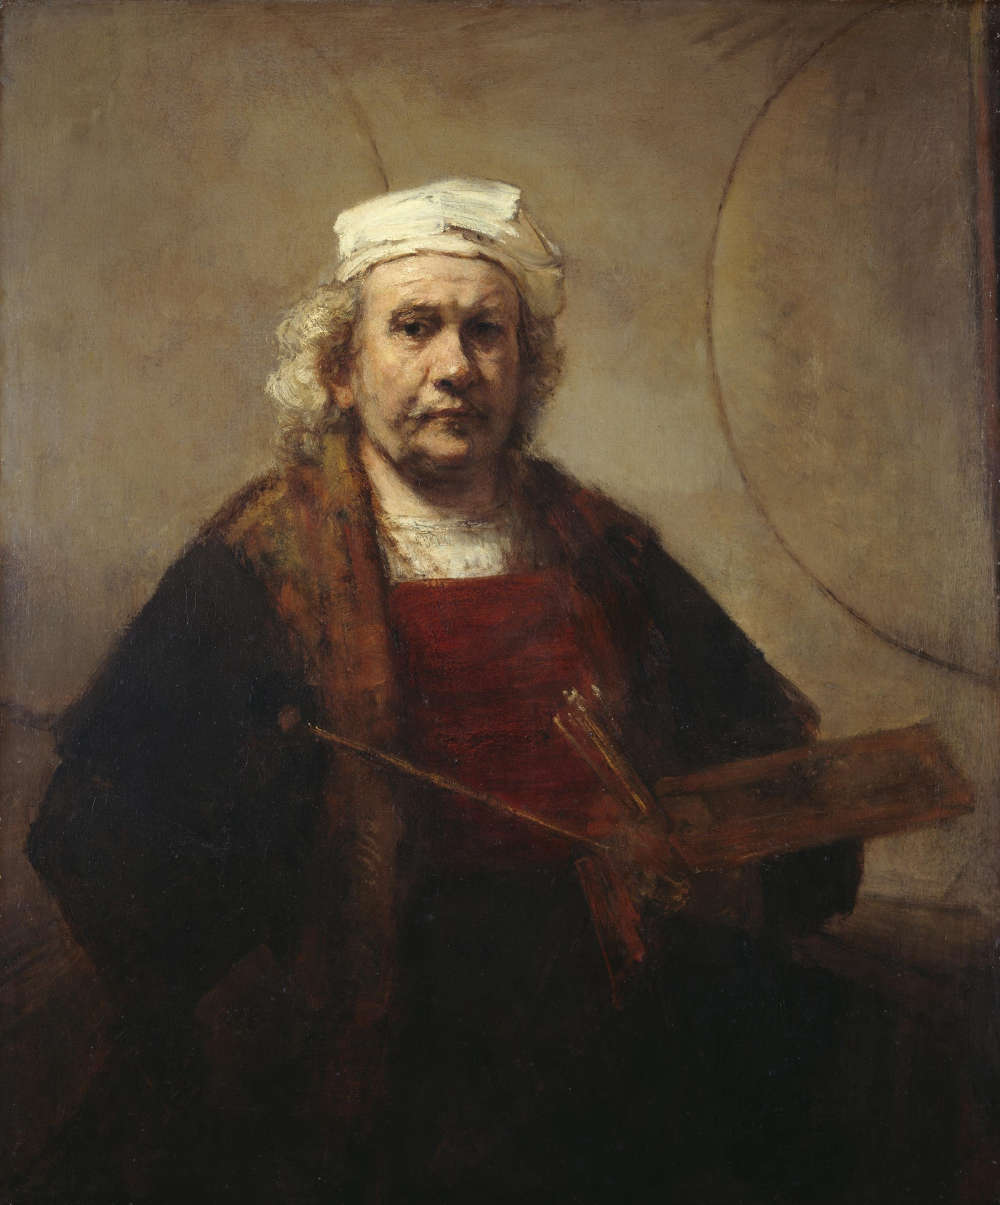 Rembrandt van Rijn, Self-Portrait with Two Circles, c. 1665. Oil on canvas 45 x 37 in 114.3 x 94 cm. English Heritage, The Iveagh Bequest (Kenwood, London). Photo: © Historic England Photo Library